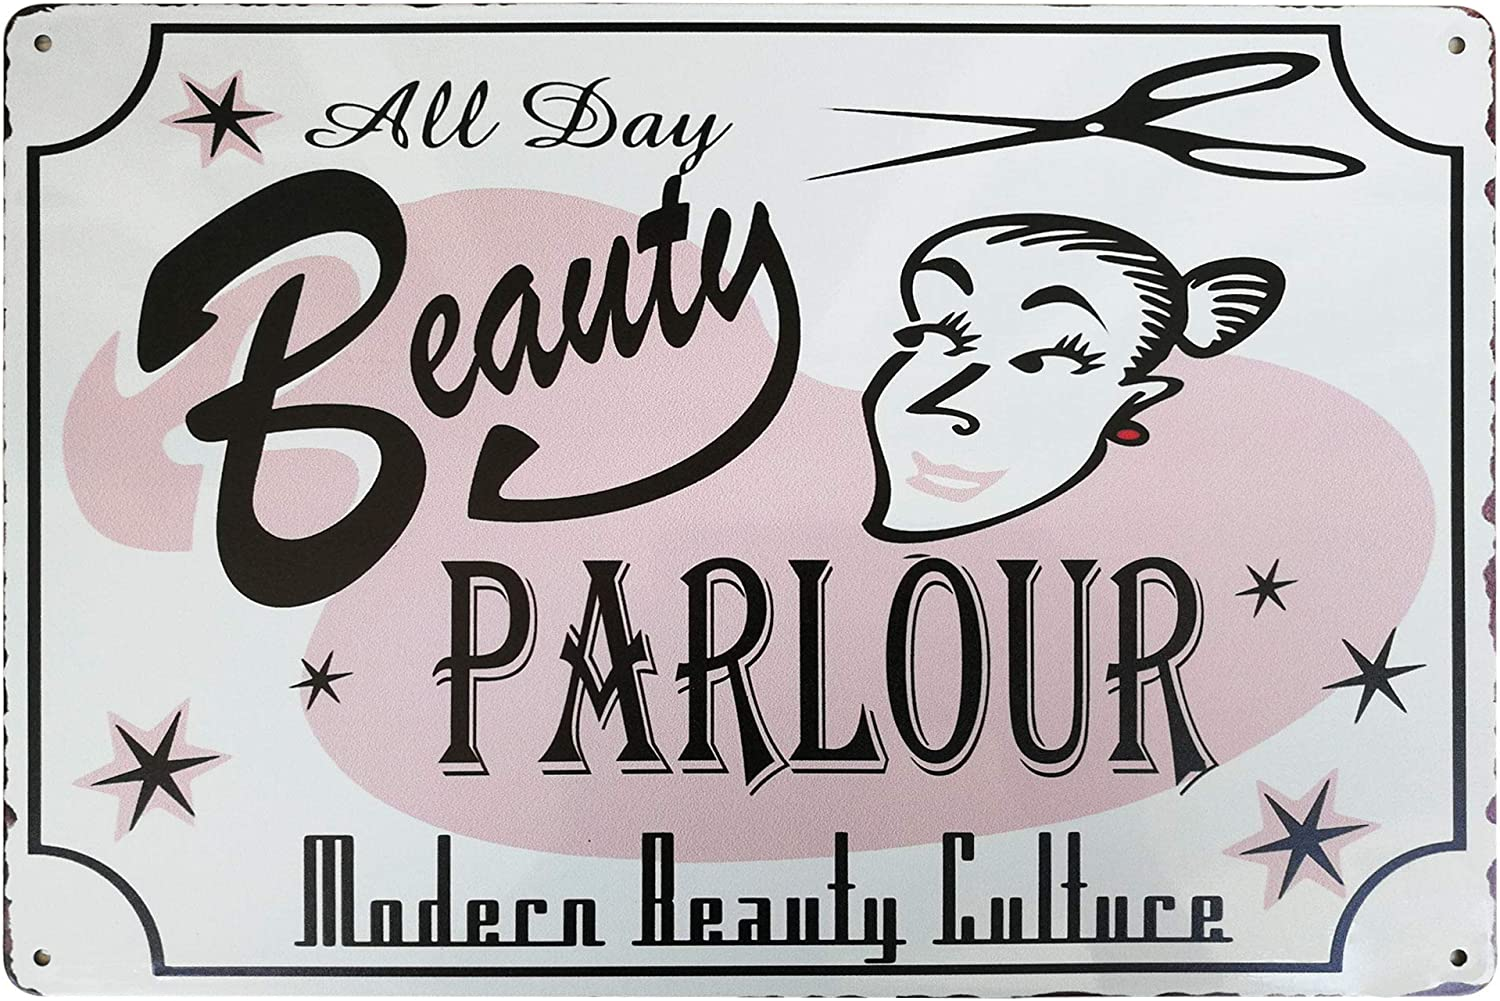 PXIYOU Funny Beauty Parlor All Day Retro Vintage Metal Sign Barber Salon Shampoo Shop Country Home Decor 8X12Inch